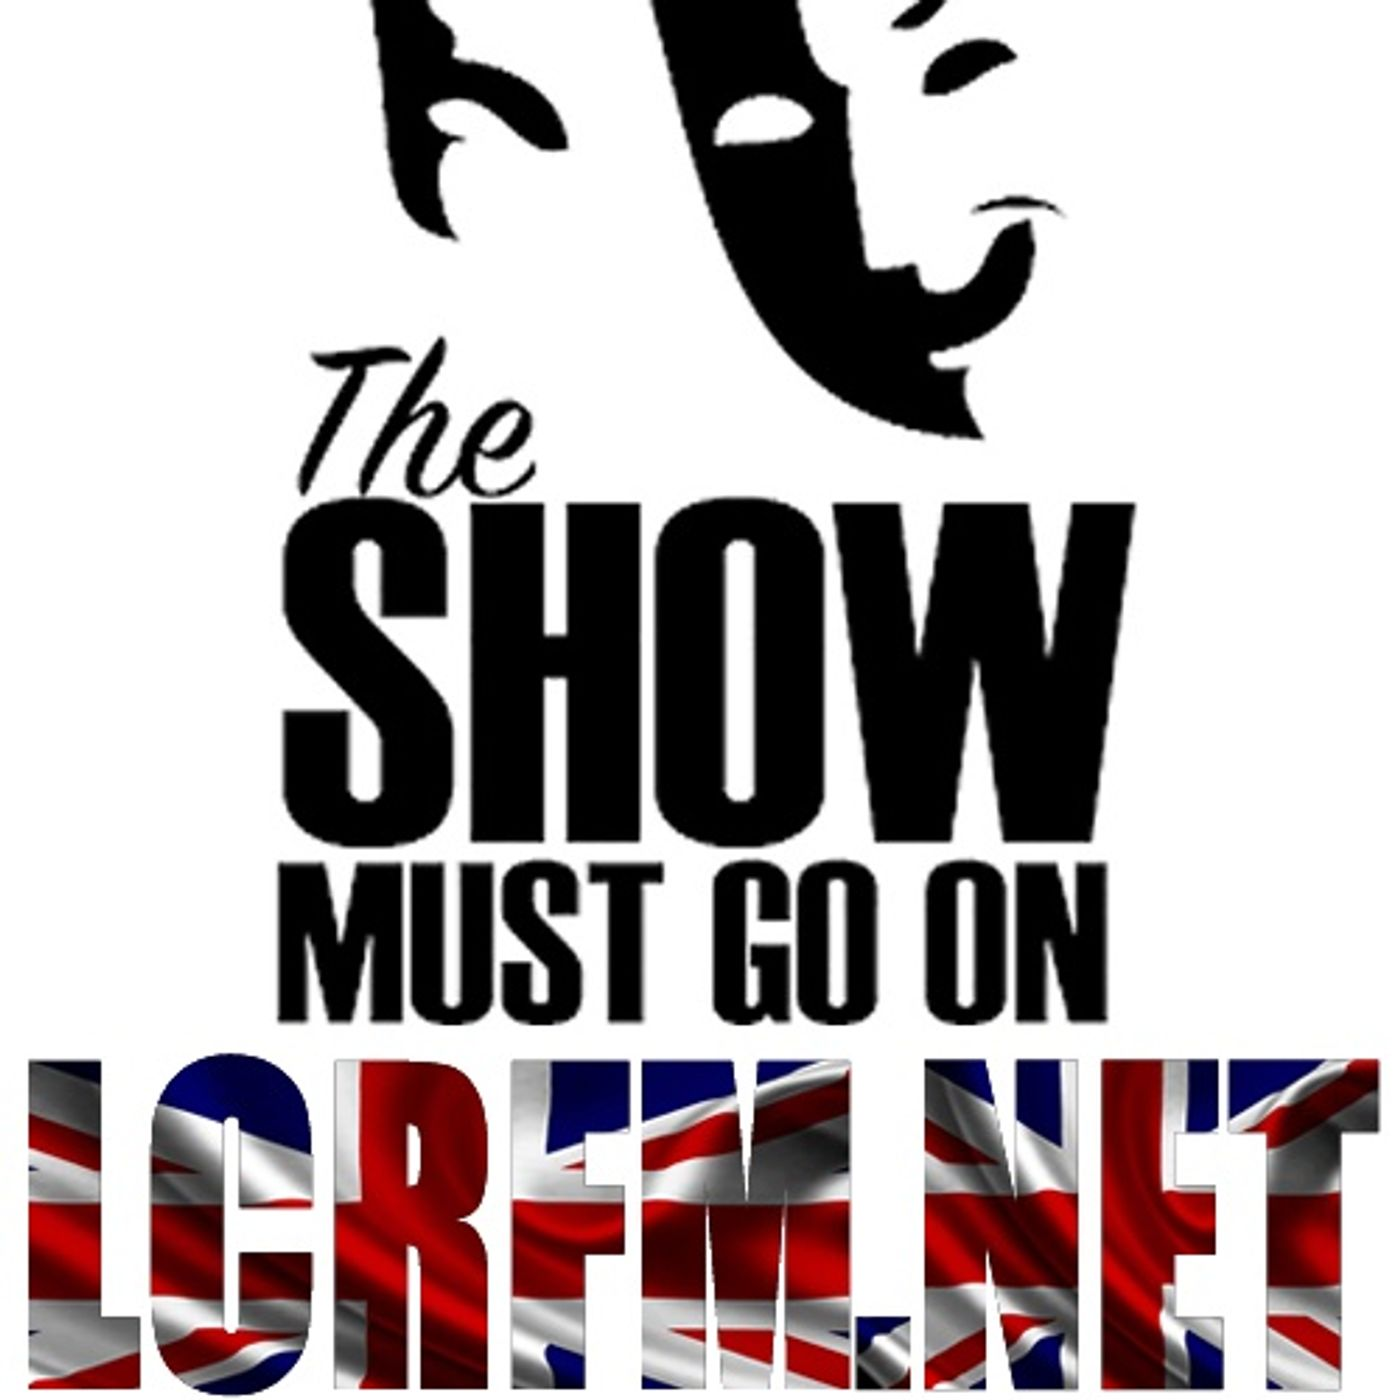 The Show must go on ... LIVE on lcrfmlive.com (Part 4) @8pm GMT... Featuring 3 amazing songs from 9 Different Artists